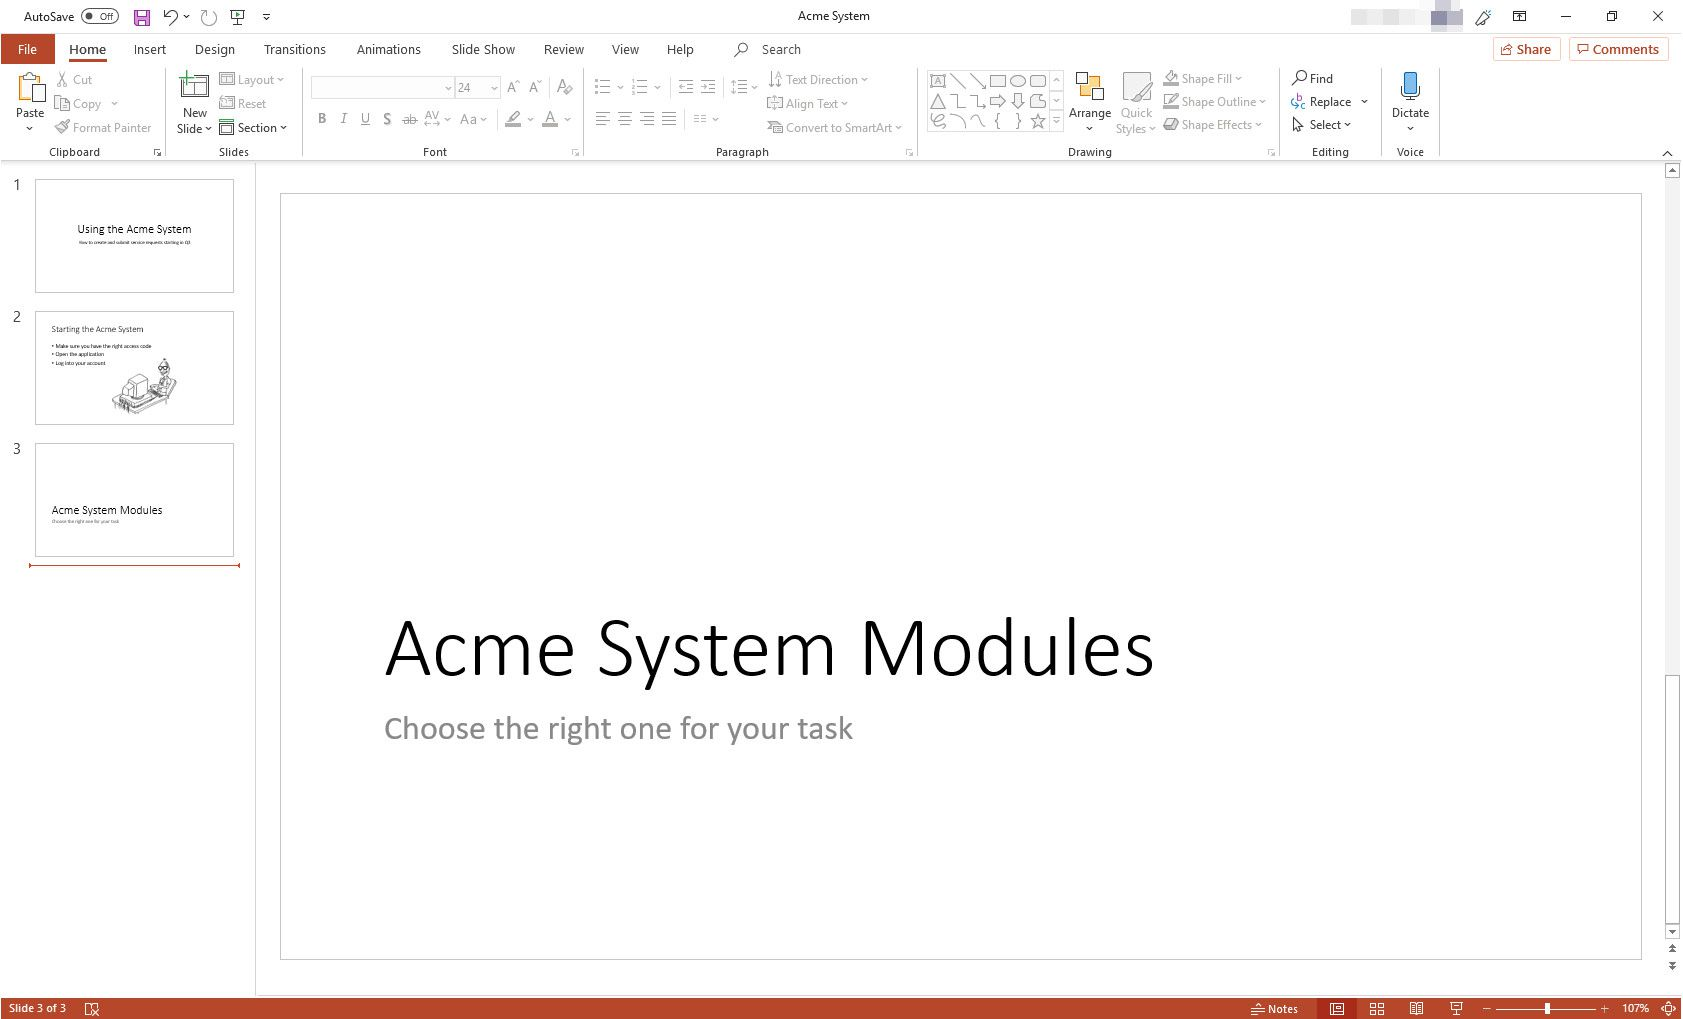 MS PowerPoint presentation with Section Header slide layout displayed